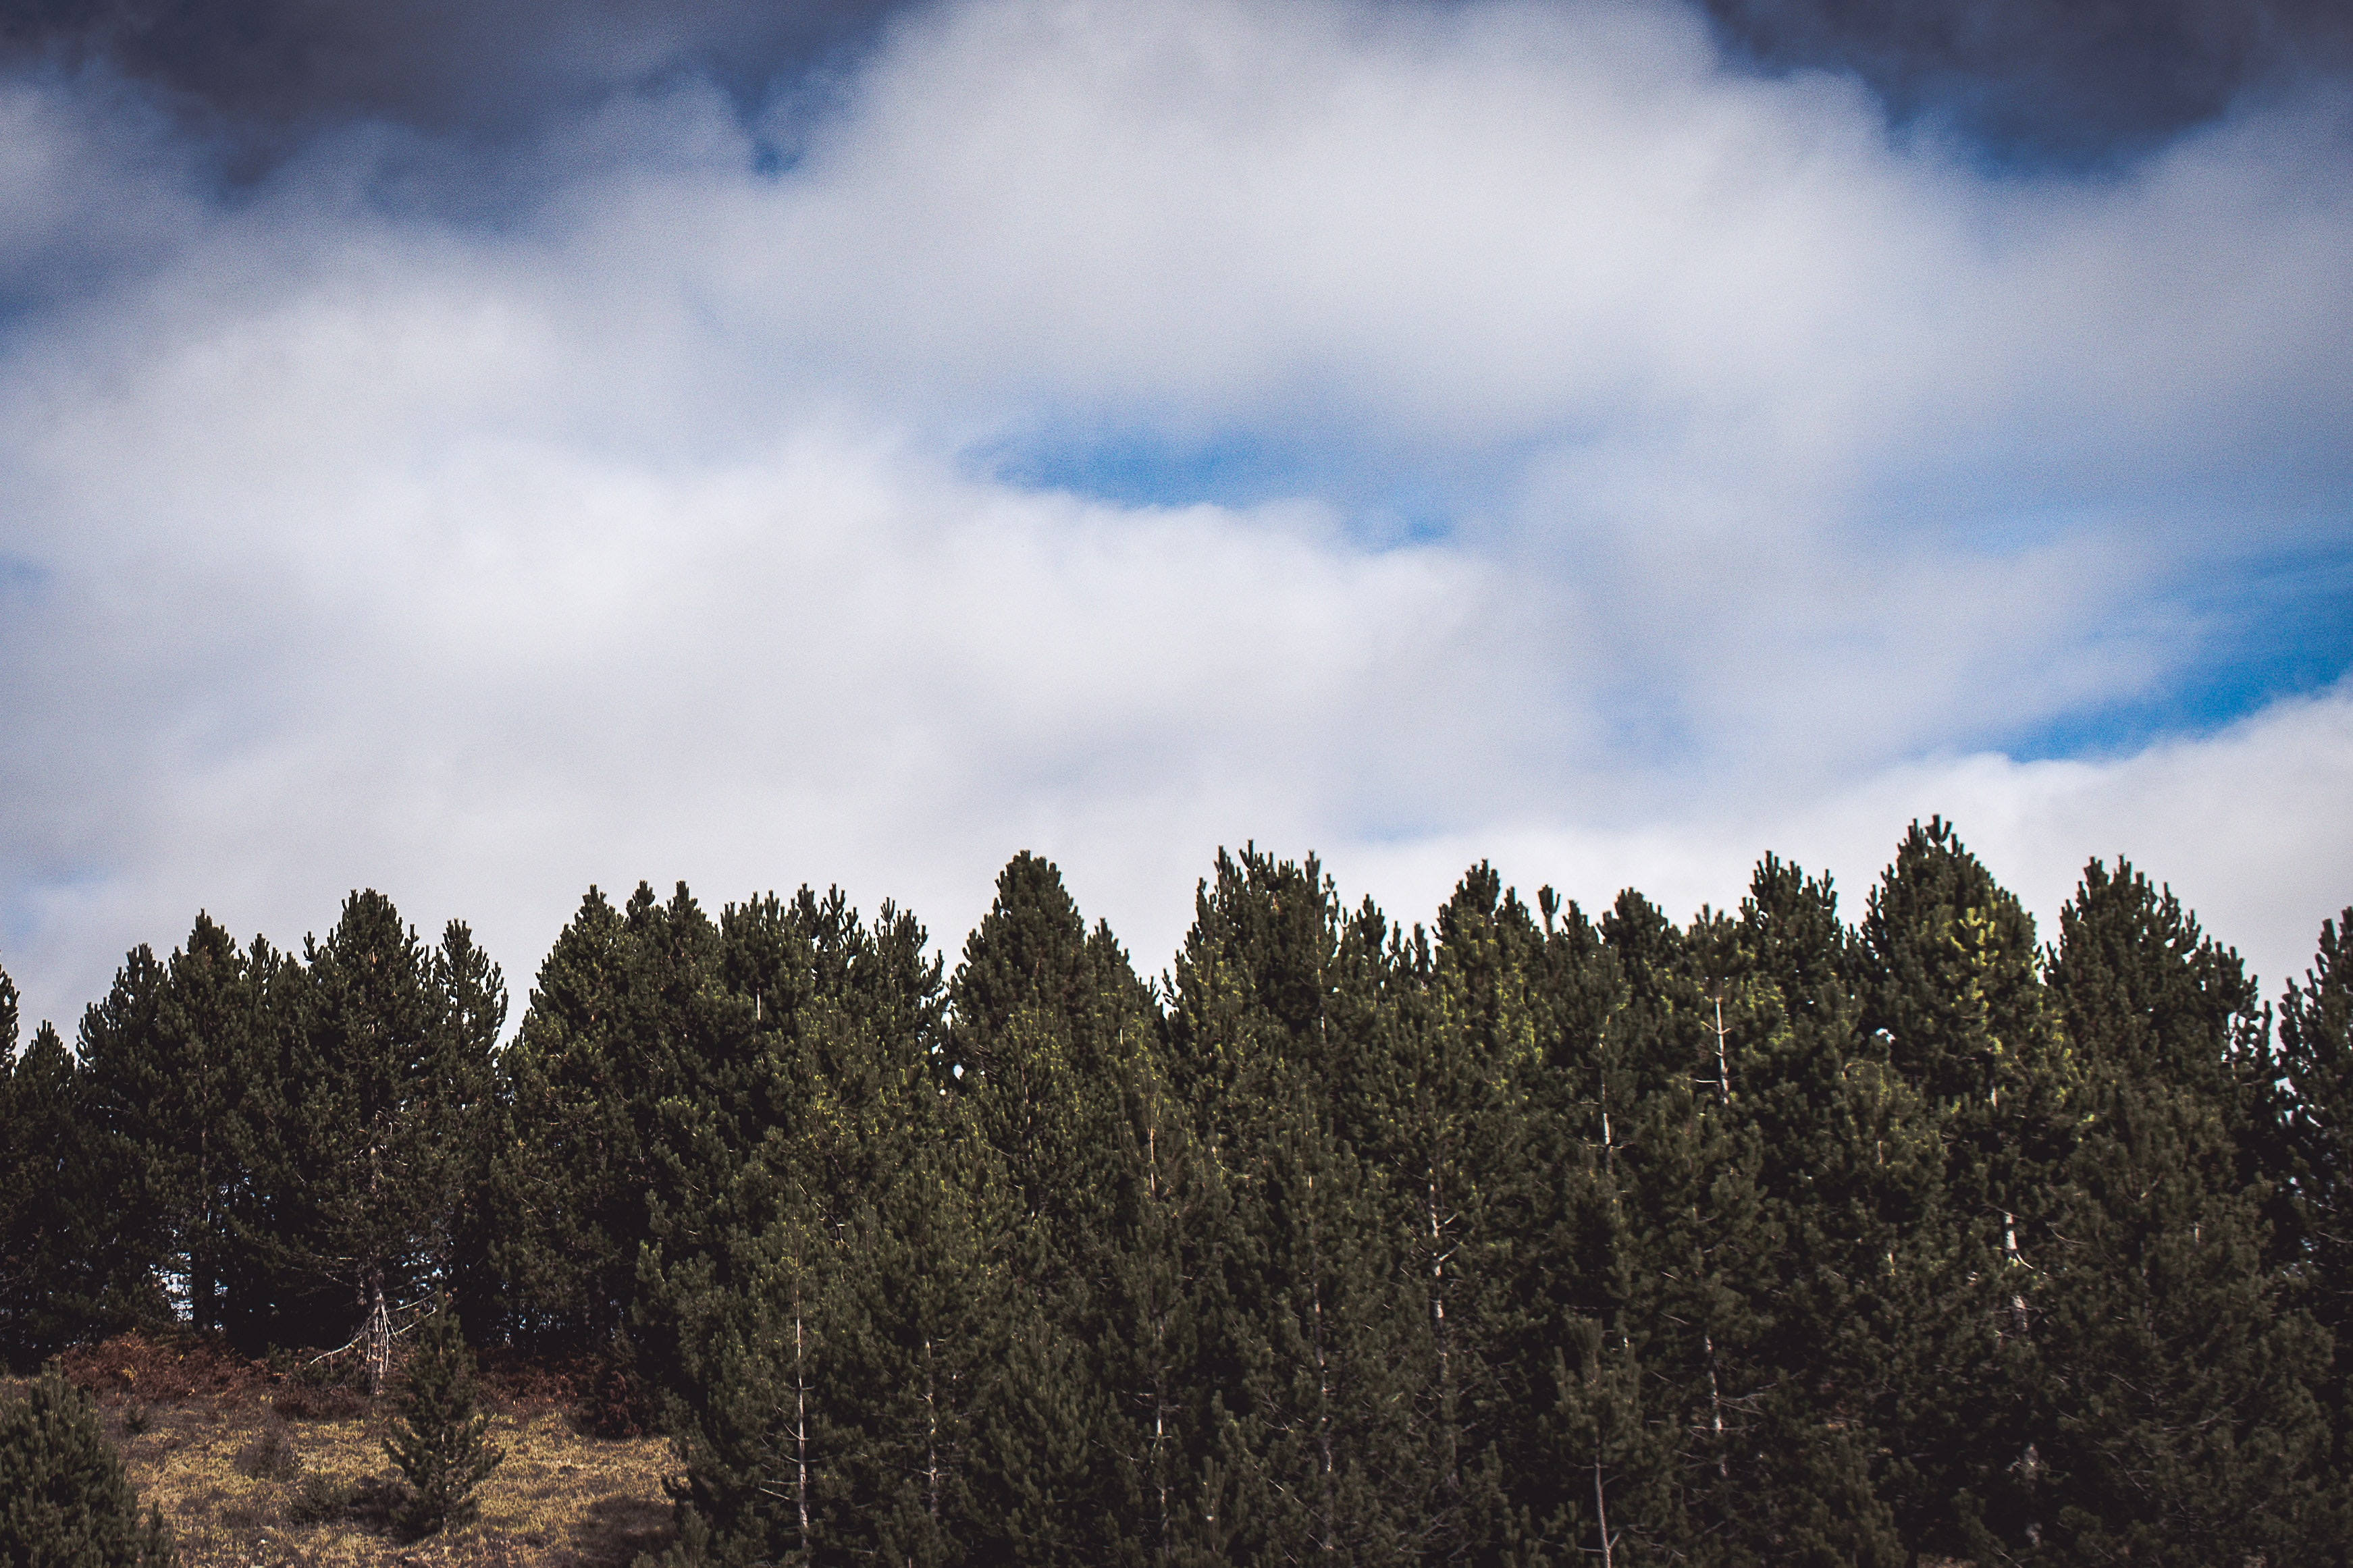 green leafed trees under cloudy sky during daytime